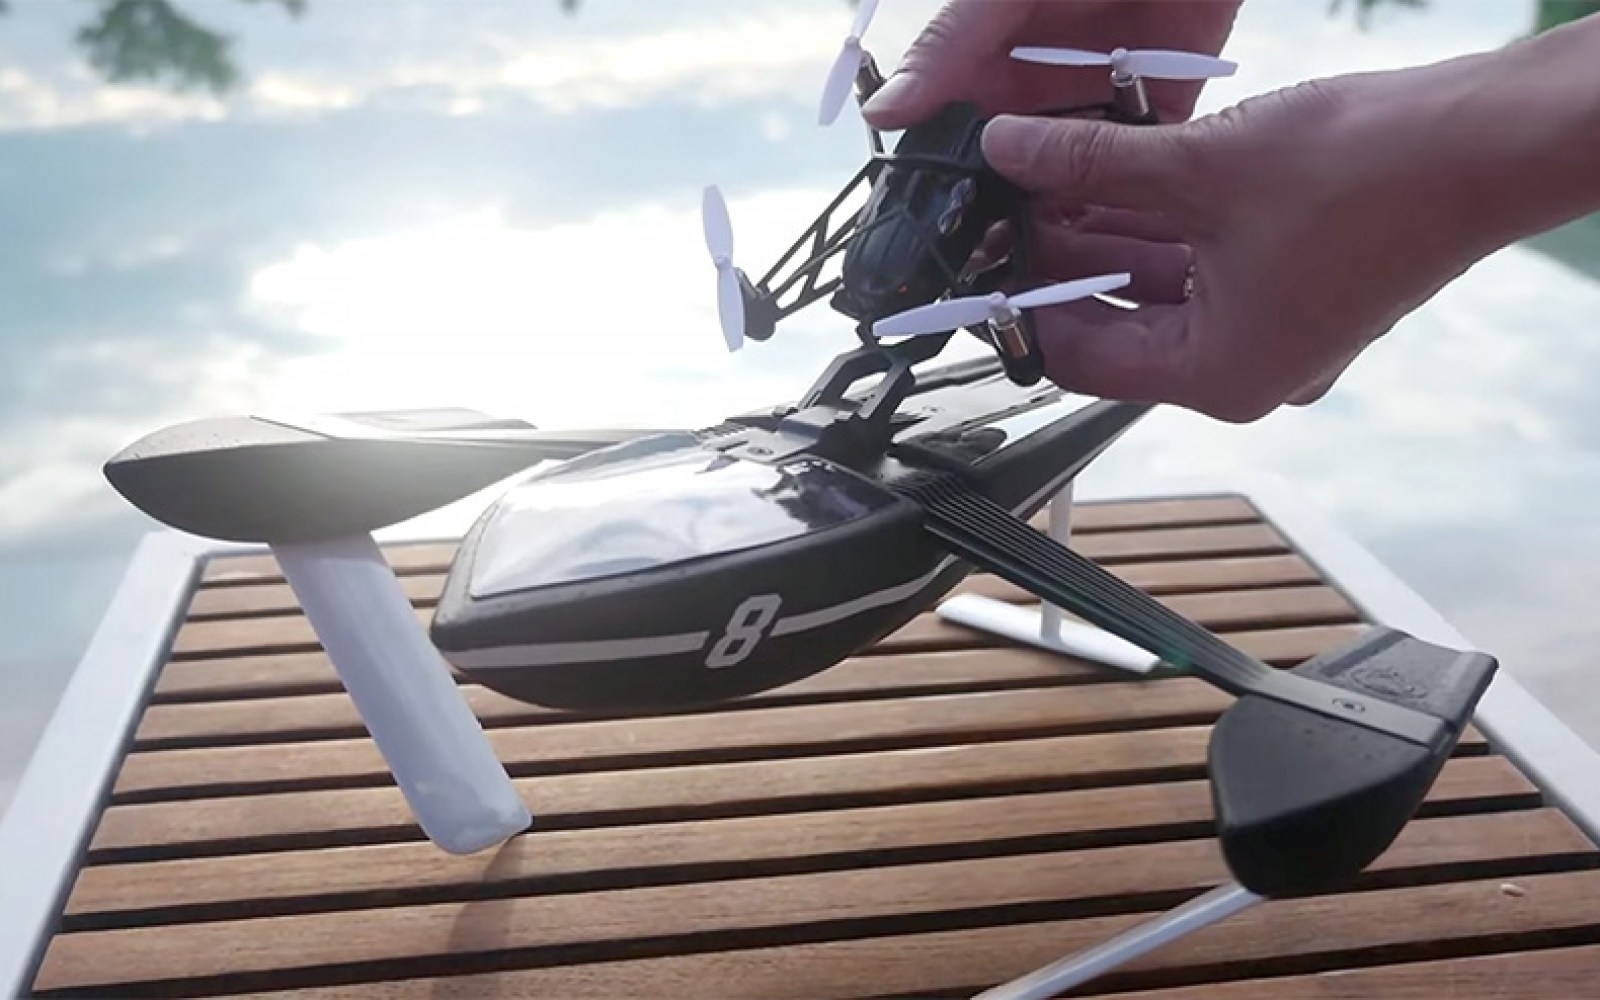 Parrot details new drones with upgraded specs for land, water and air